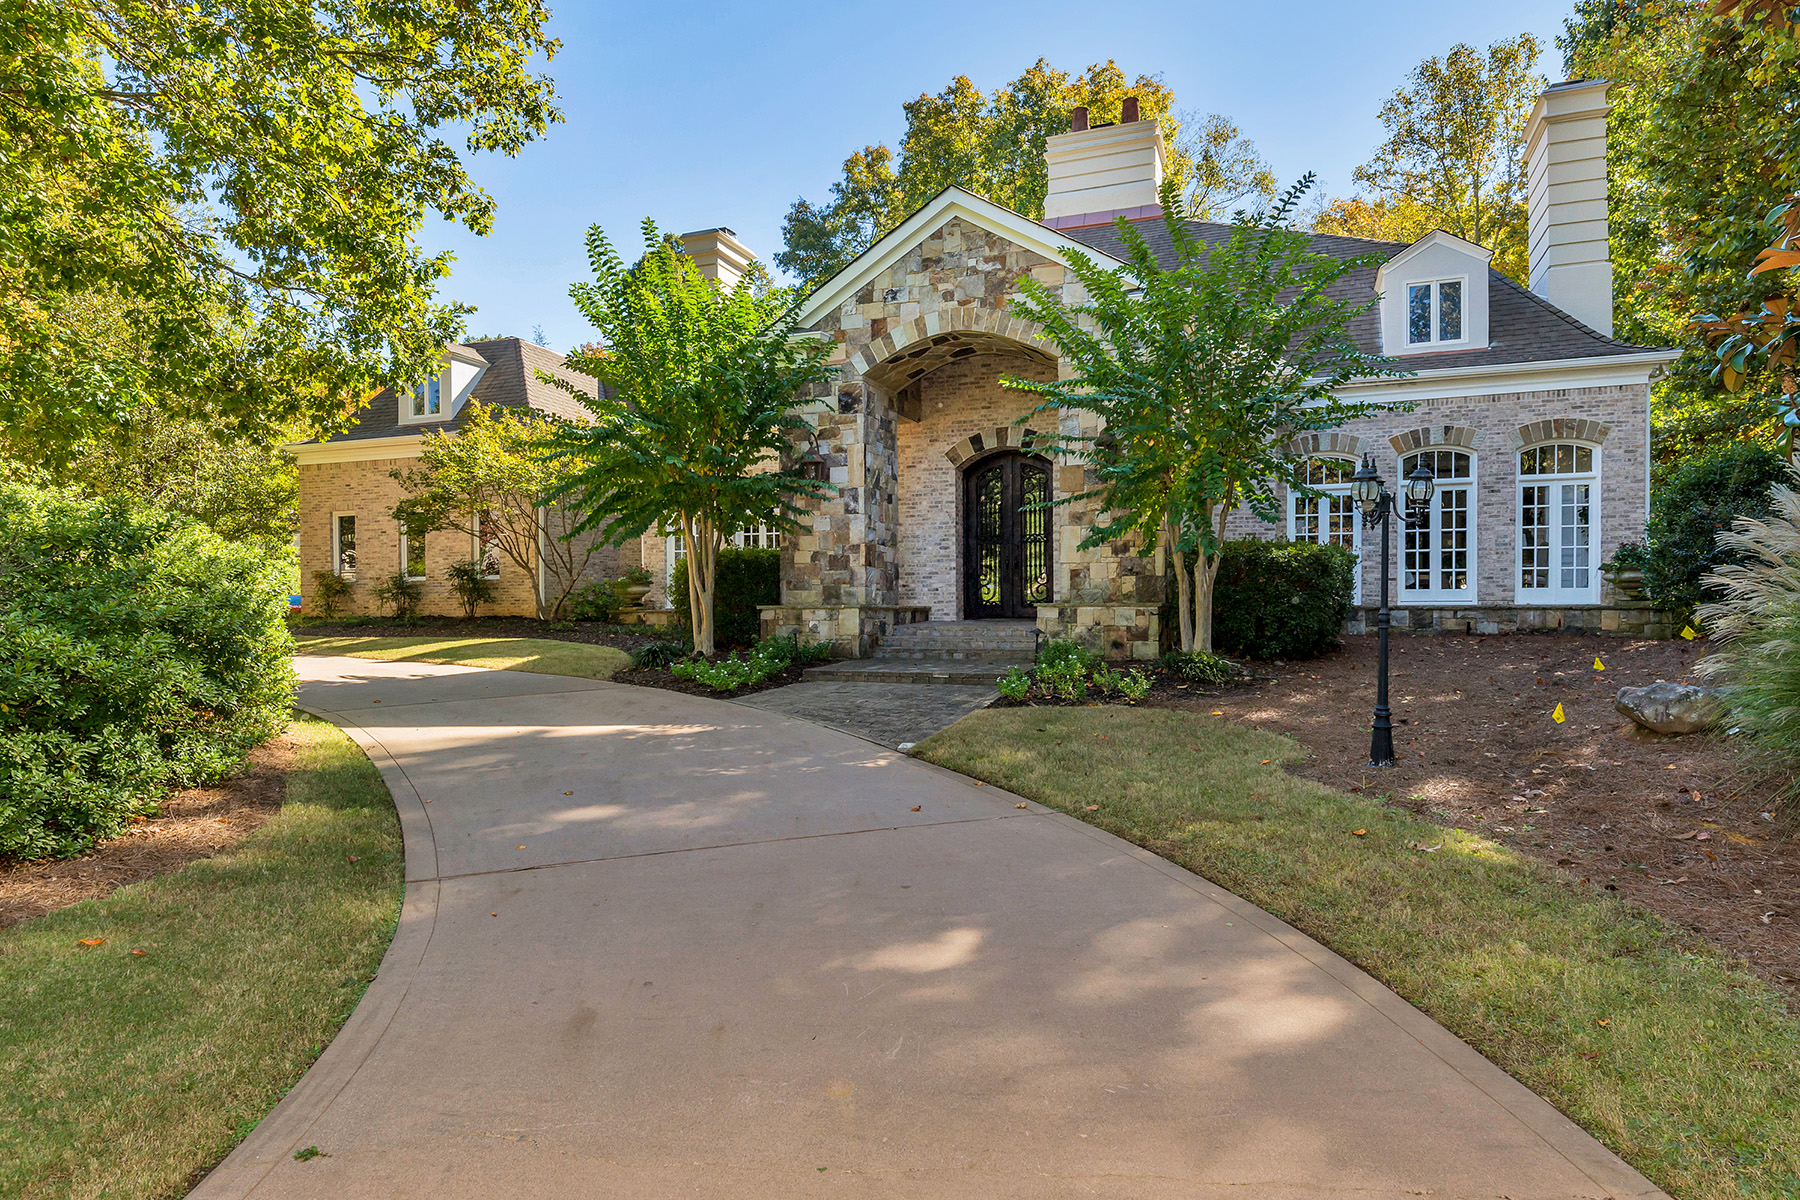 Single Family Home for Sale at European Elegance in The Heart of Sandy Springs 890 Marseilles Drive Sandy Springs, Georgia 30327 United States